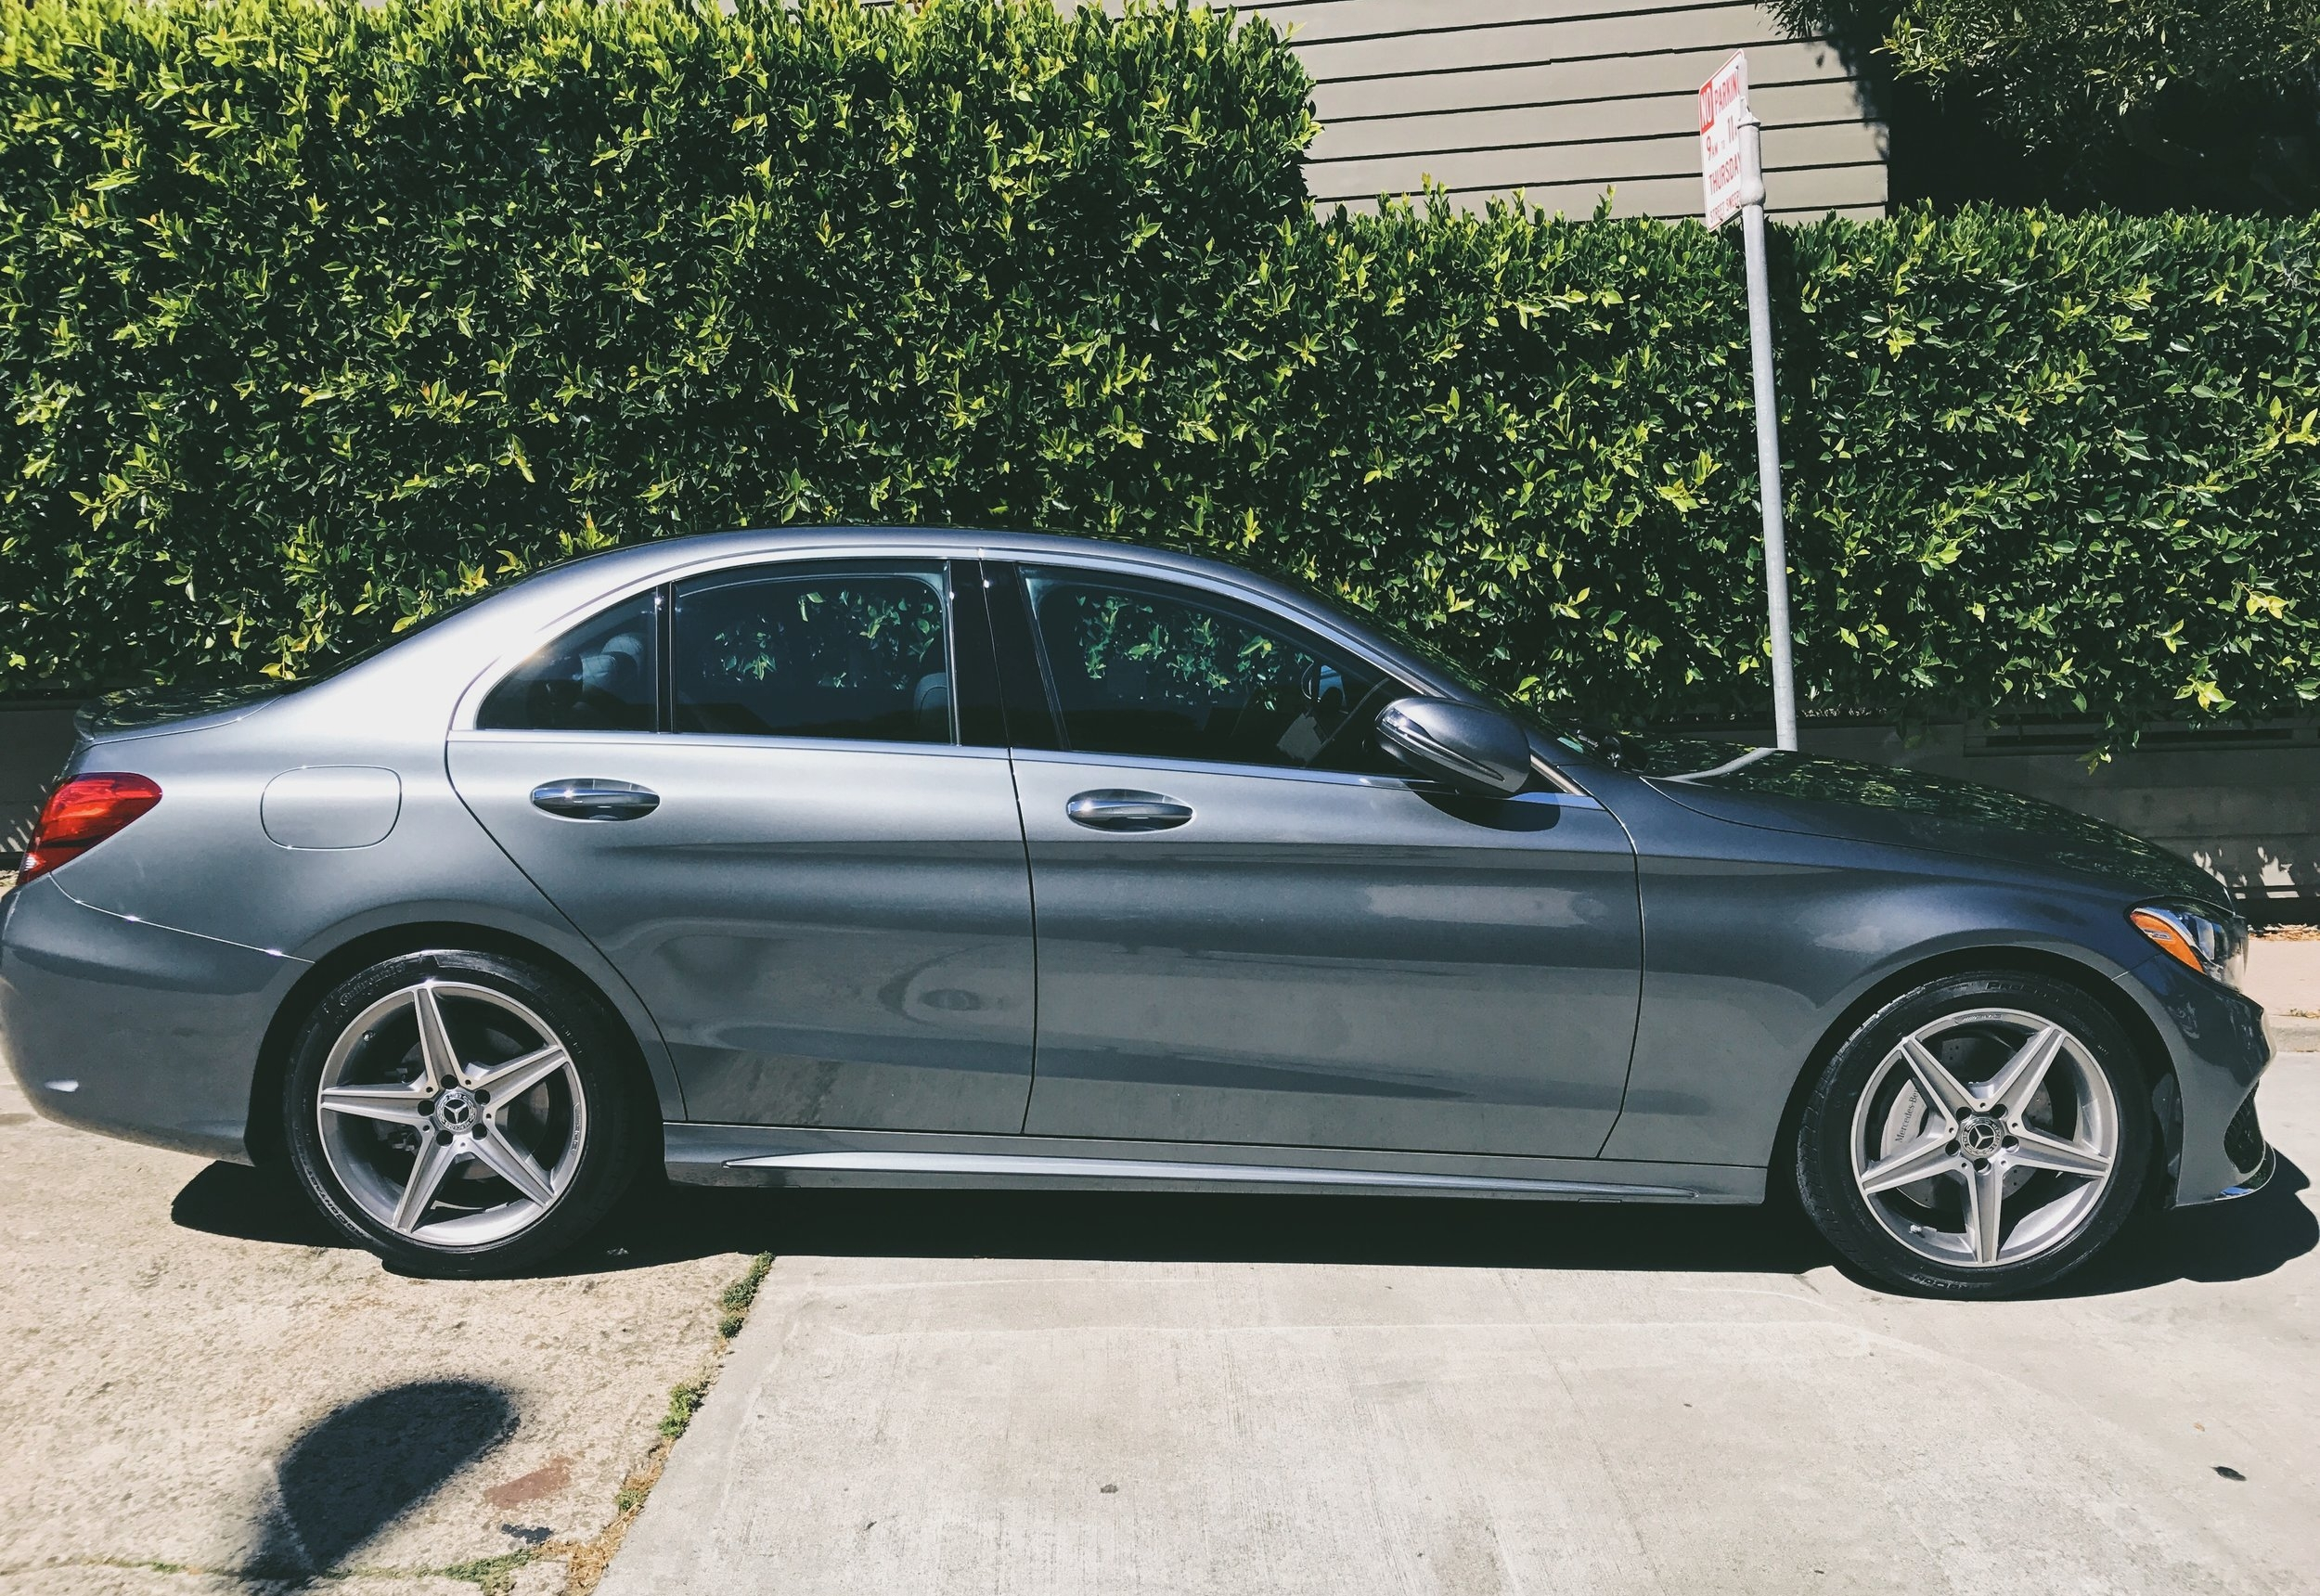 Personal Chauffeur - All-day,anywhere you want to go.You don't have to deal with aggressive traffic and parking in the city. Enjoy the sightseeing and relax in a luxury C300.